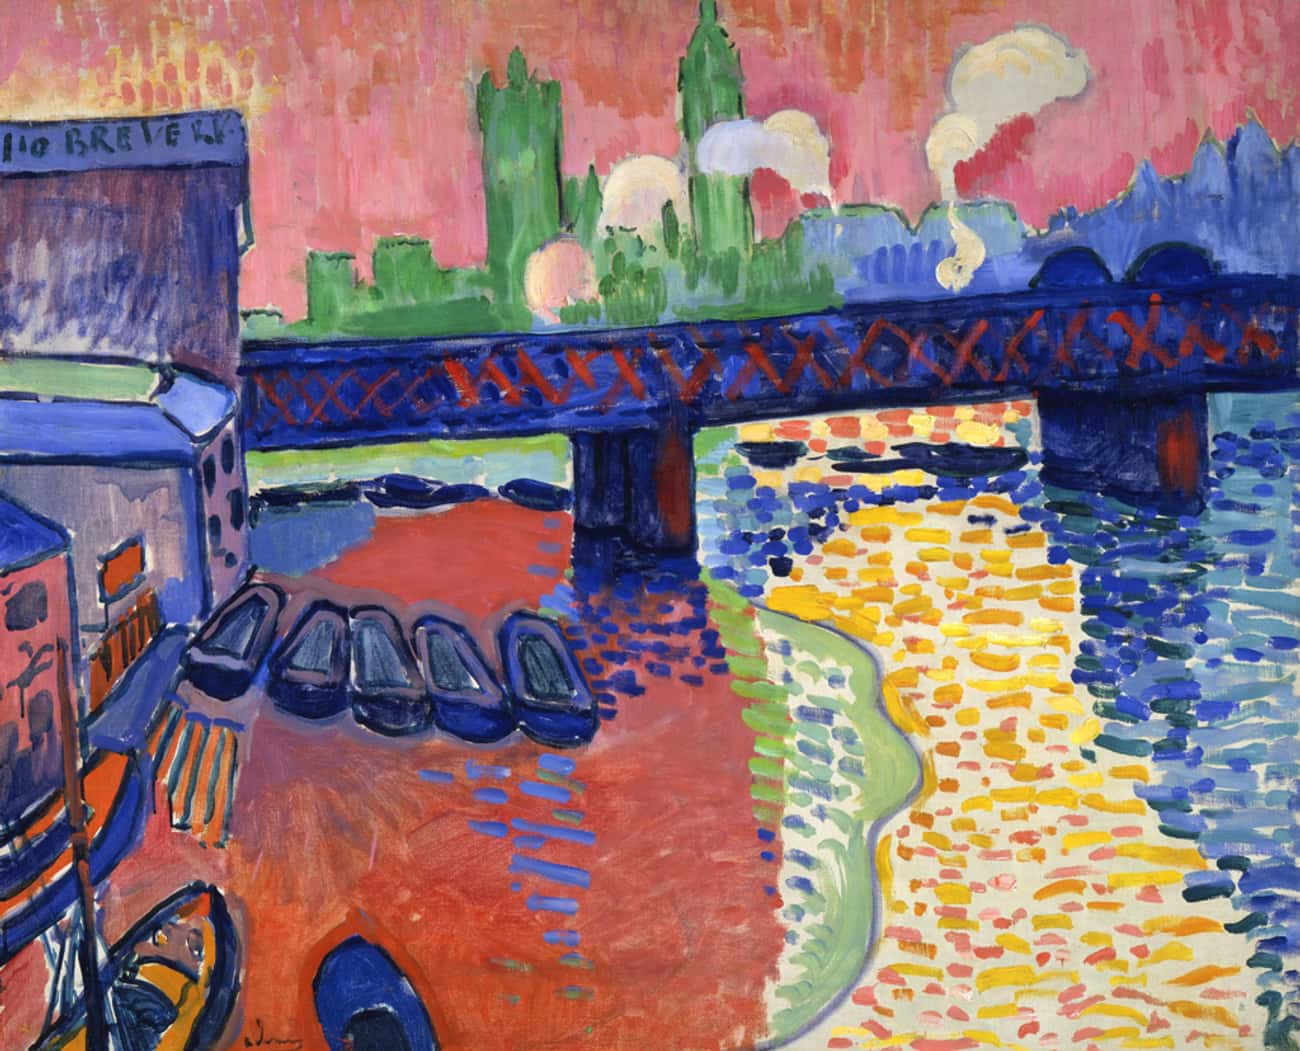 Charing Cross Bridge, London is listed (or ranked) 2 on the list Famous Fauvism Paintings